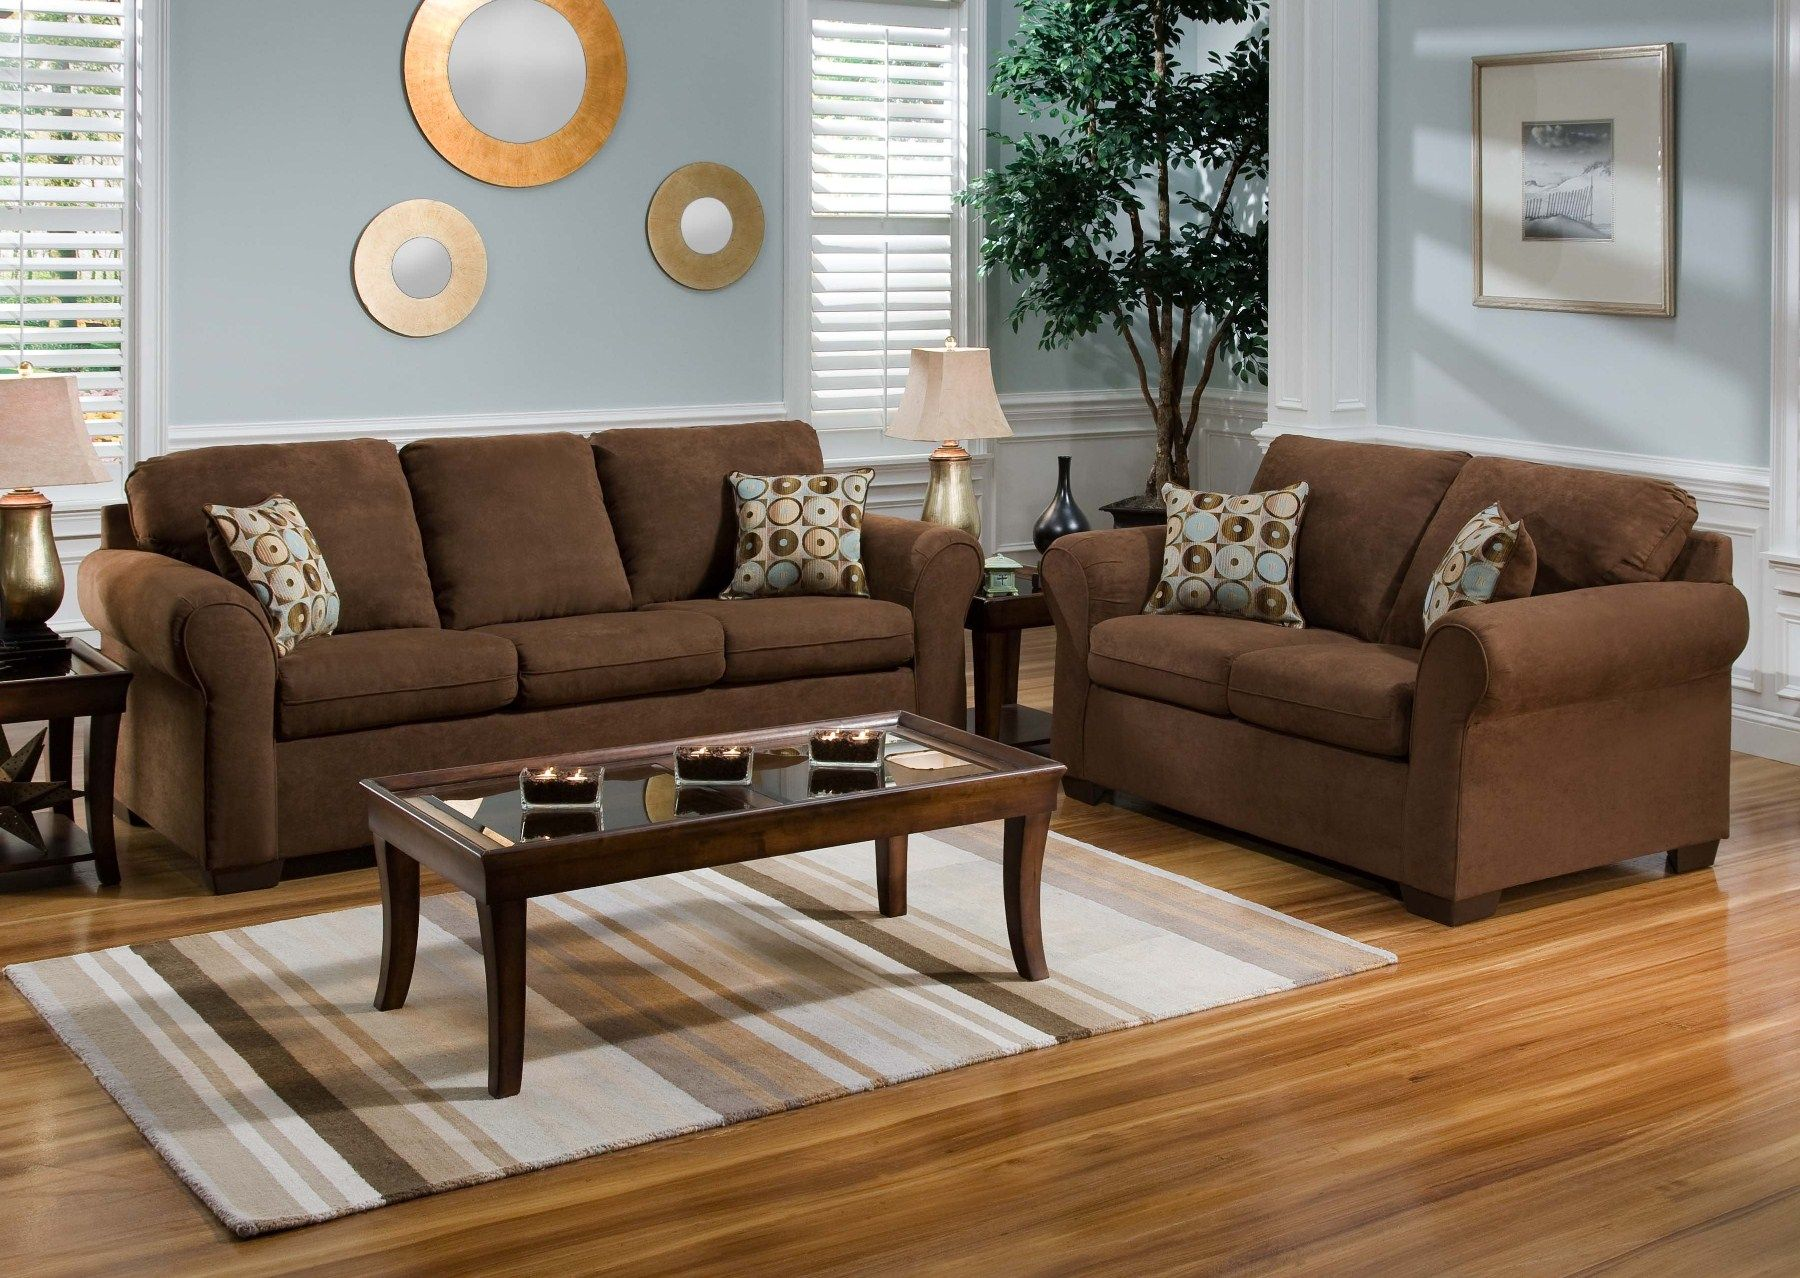 Living Room Sets Under 800 25 brown living room design ideas | brown couch living room